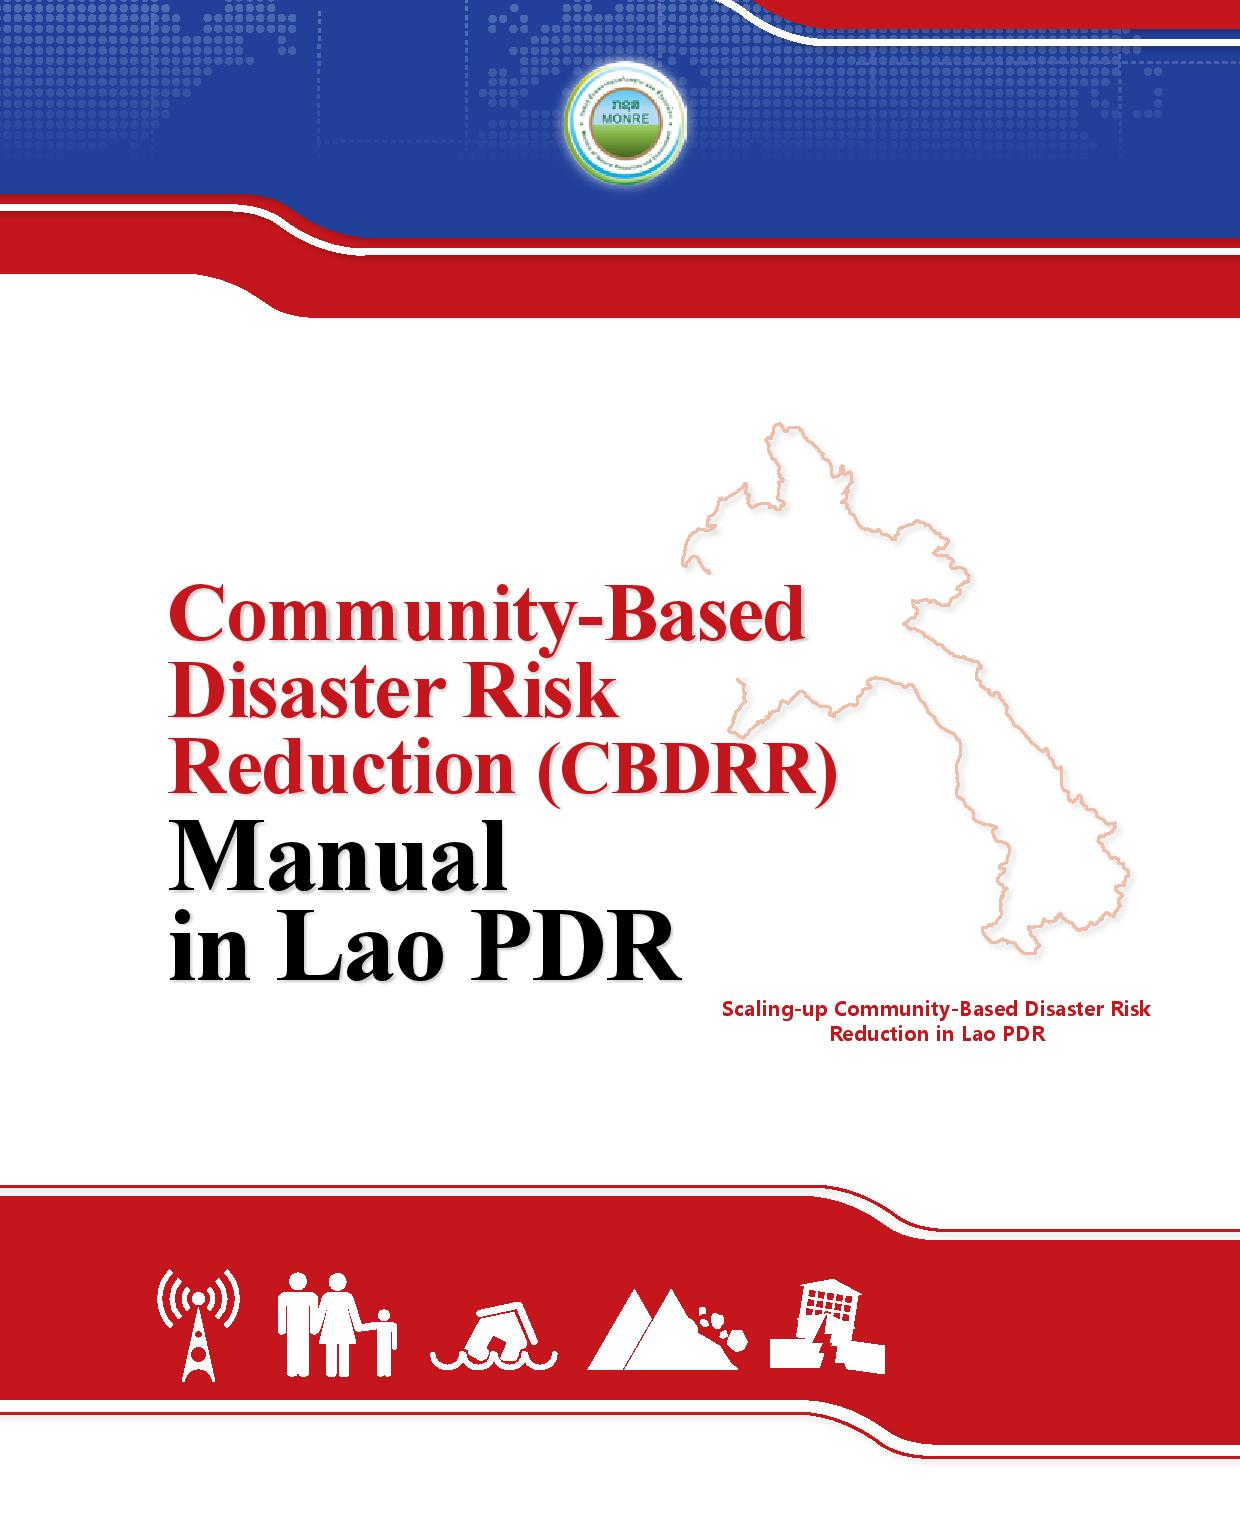 disaster risk reduction Disaster risk reduction (drr) aims to reduce the damage caused by natural hazards like earthquakes, floods, droughts and cyclones, through an ethic of prevention.